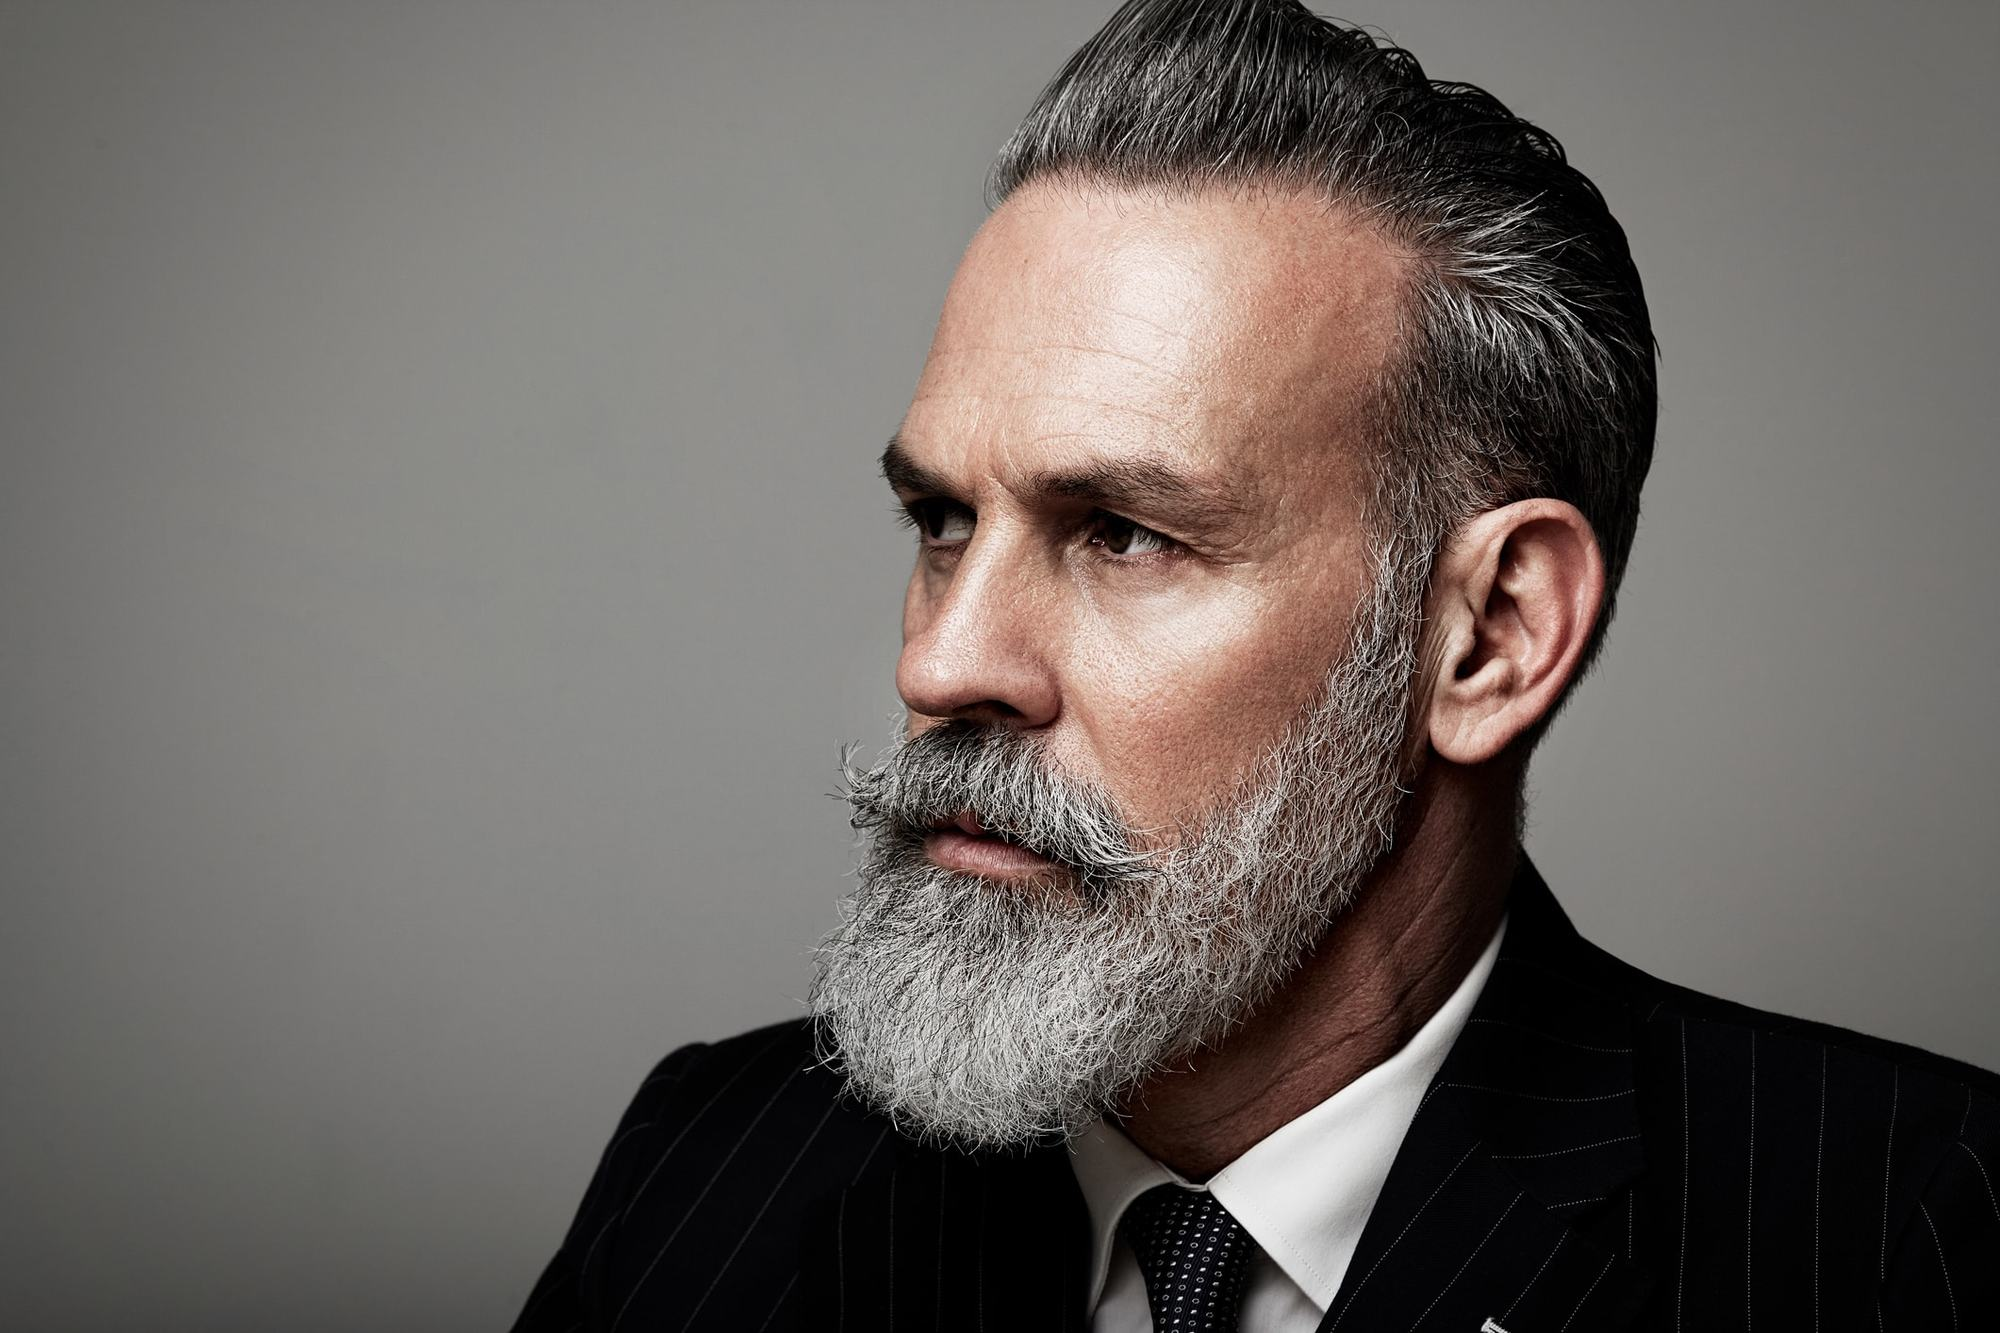 Attractive Hairstyles For Men Over 50 Styled Beard Hair Gel